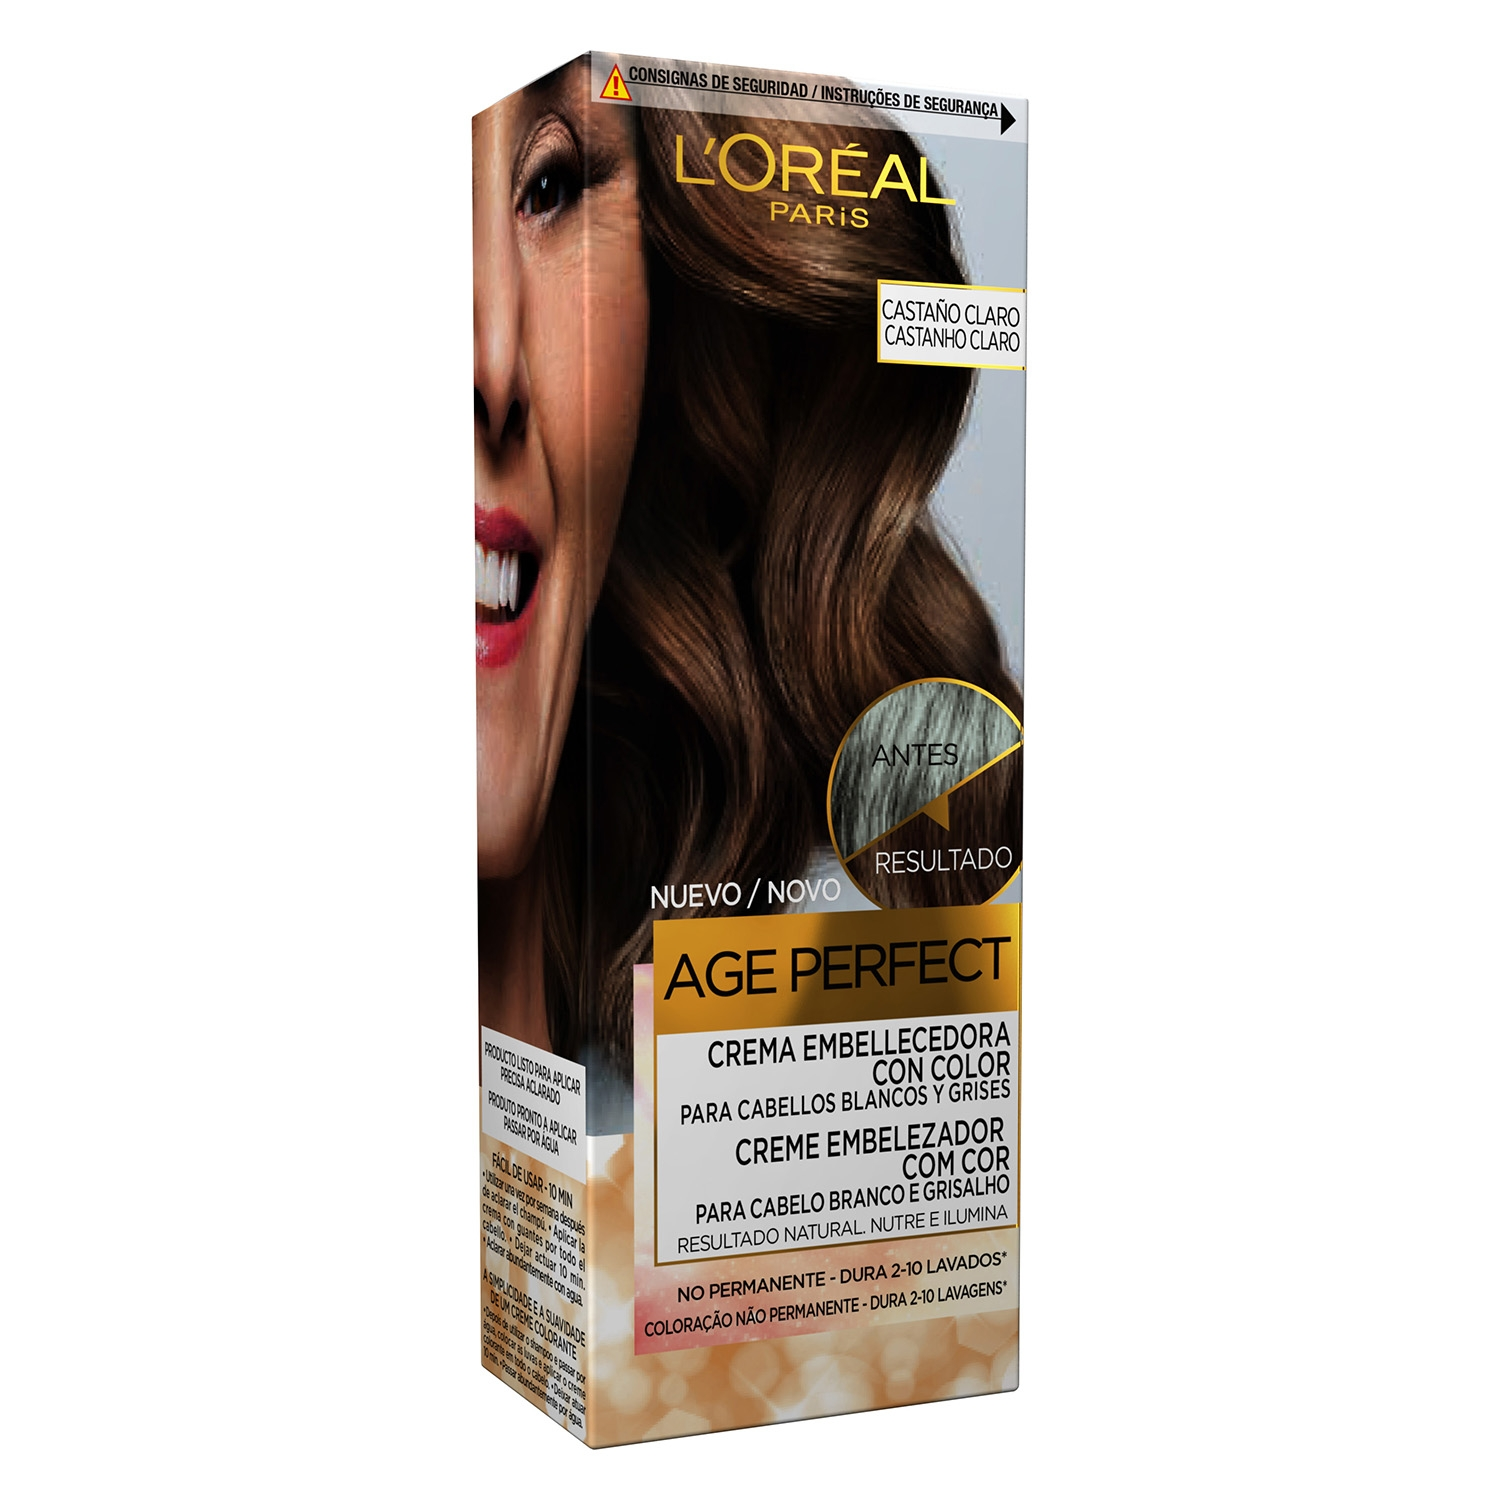 Crema embellecedora no permanente Age Perfect Castaño Claro L'Oréal 1 ud.